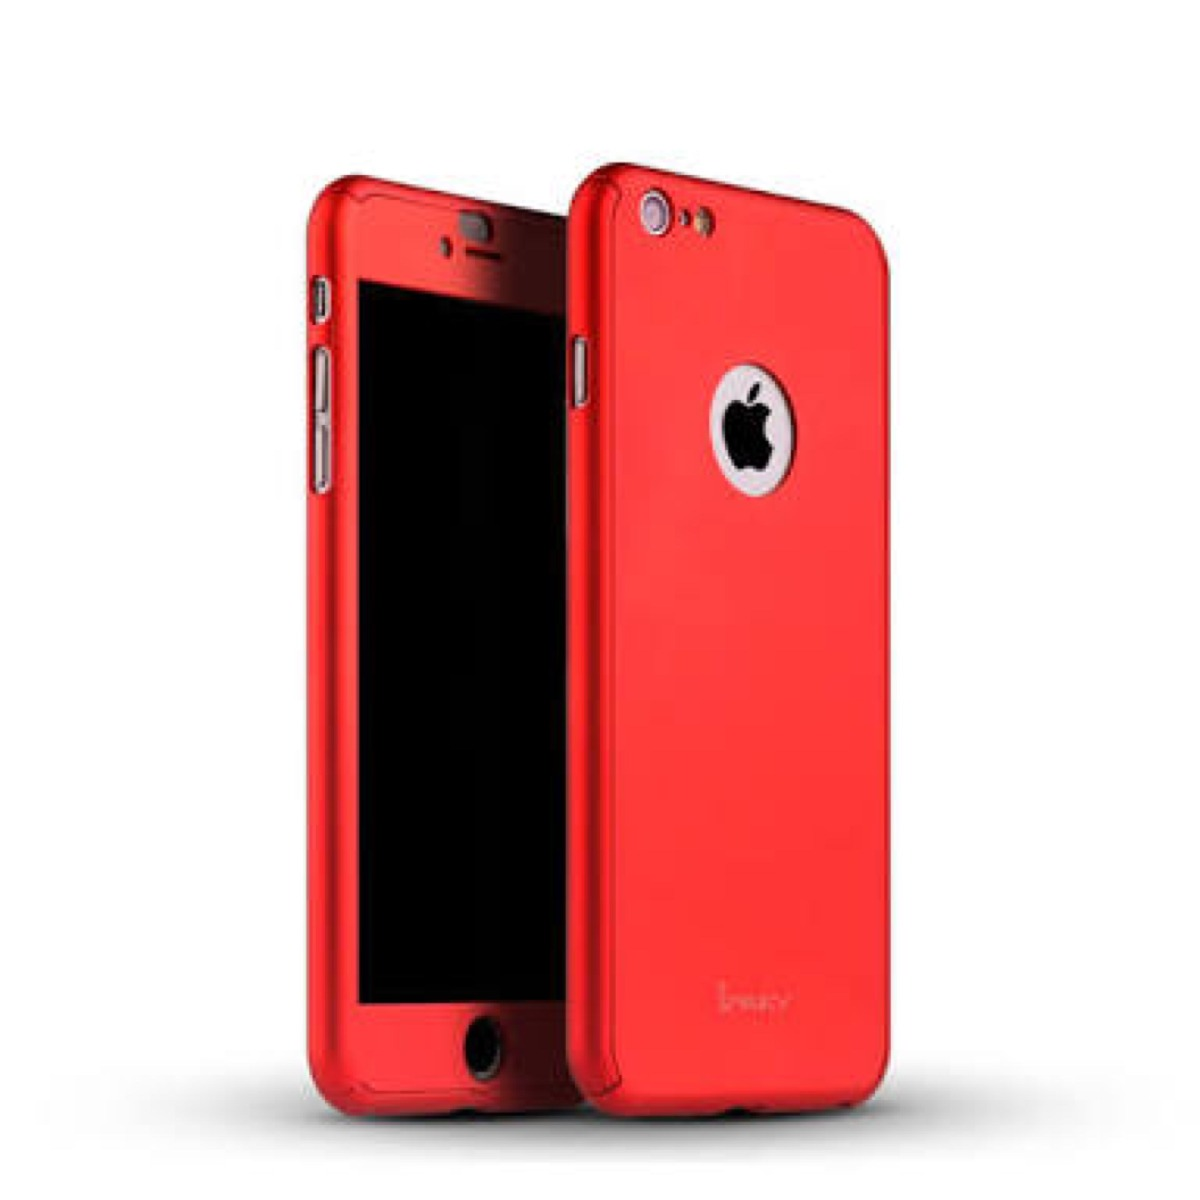 b1b018fe93e case funda protector 360 grados iphone 6 plus apple cristal. Cargando zoom.